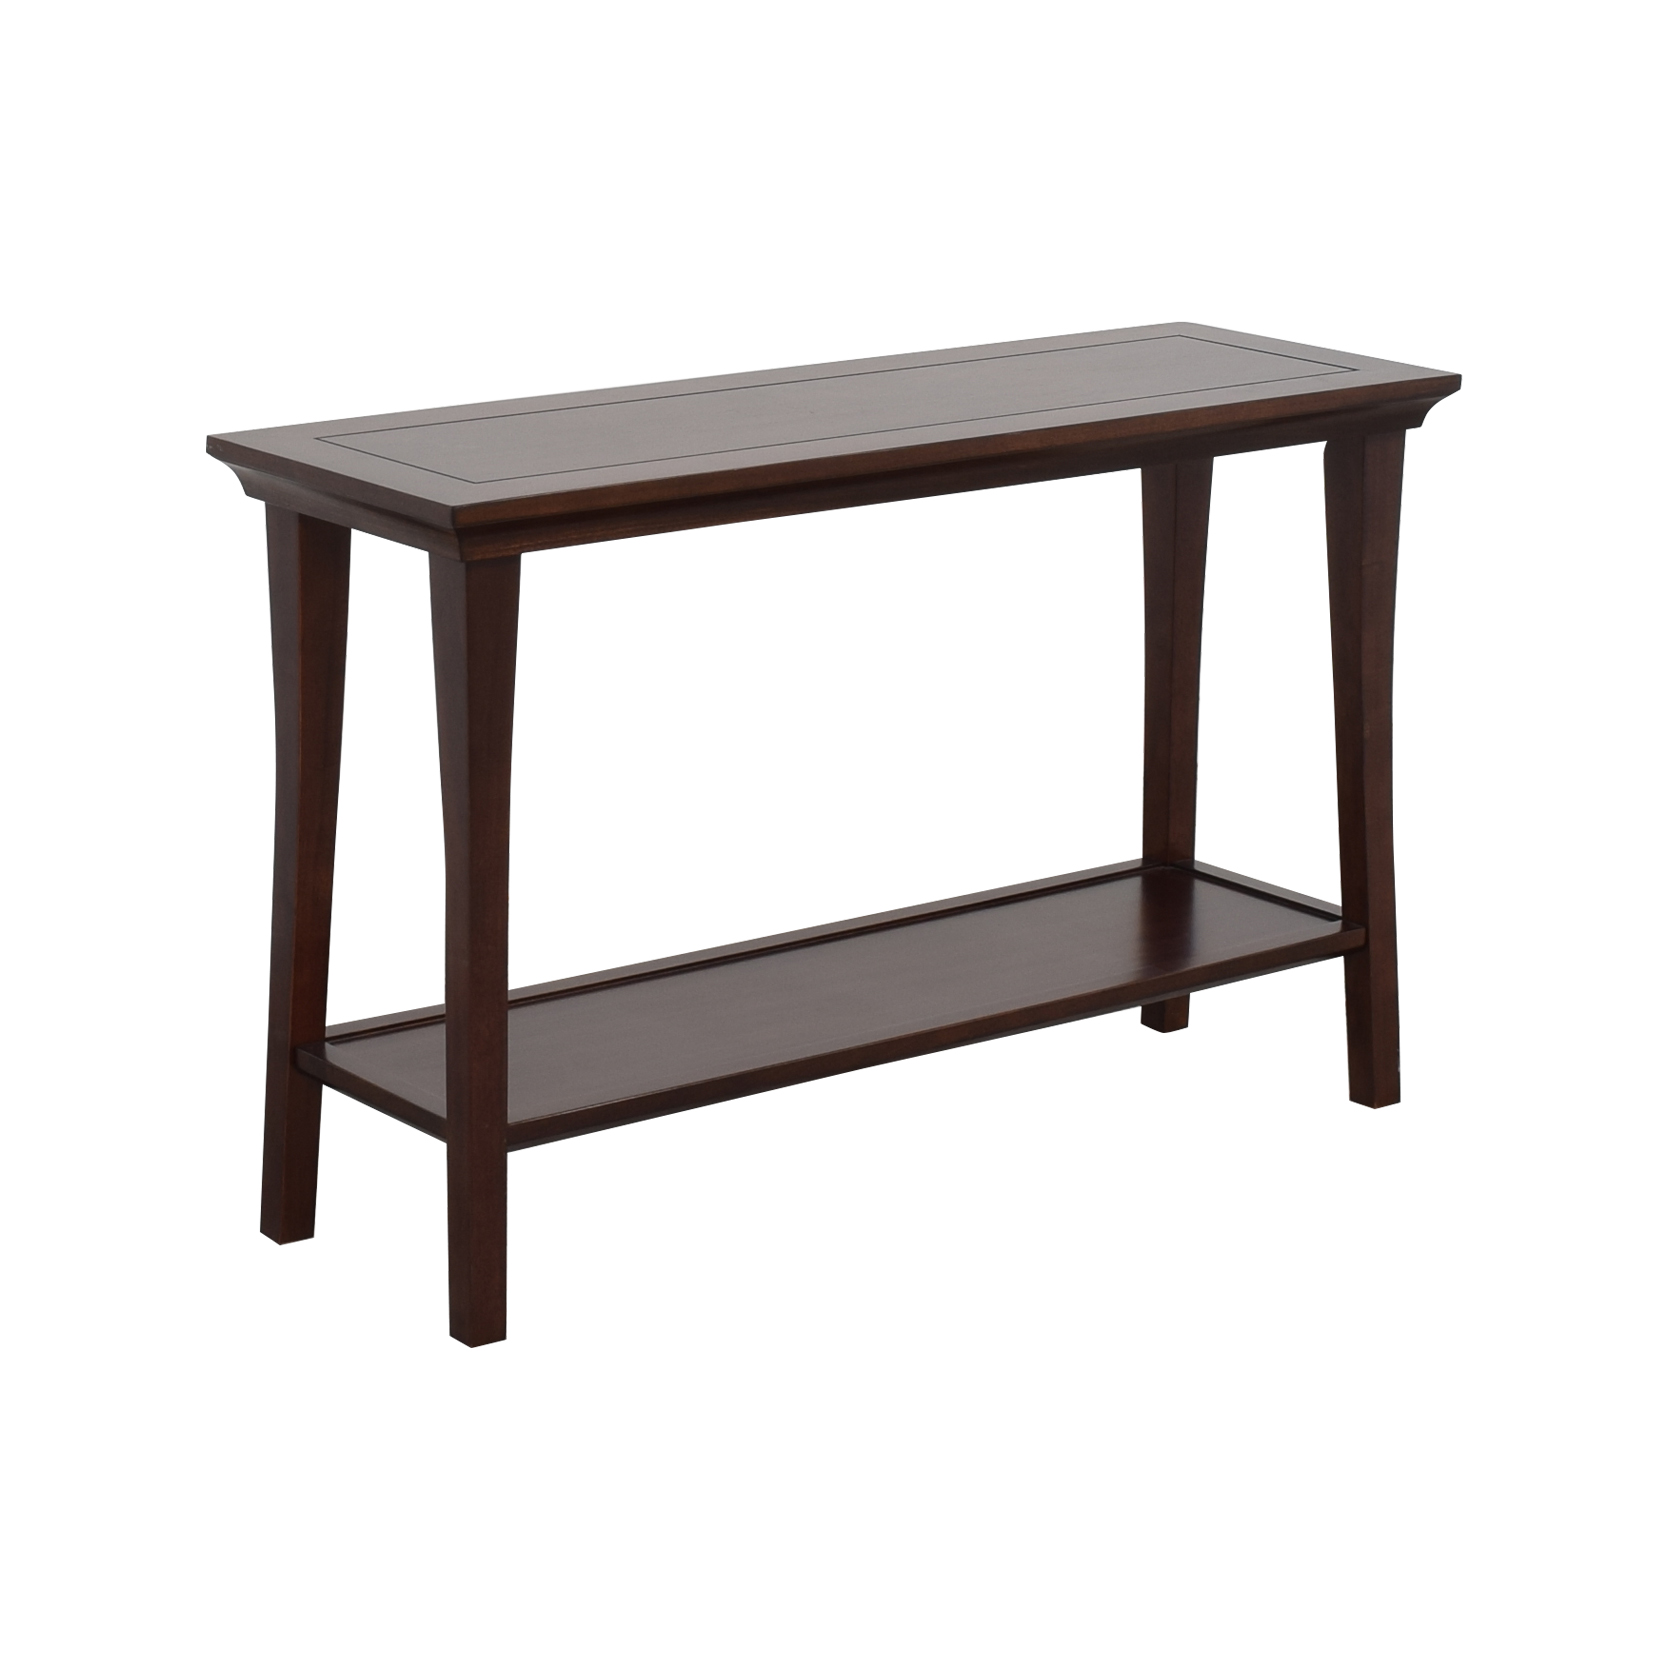 Pottery Barn Pottery Barn Two Level Console Table price